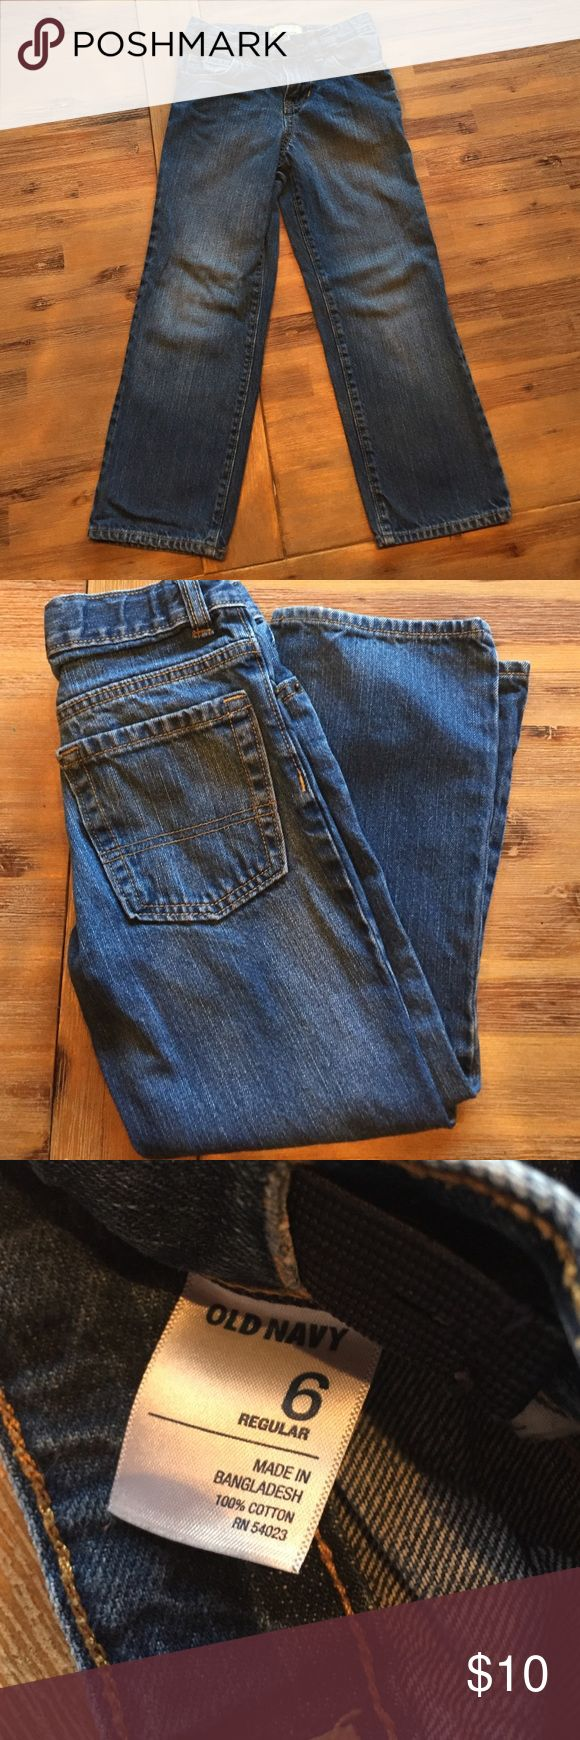 EUC Boys size 6 Old Navy straight cut jeans No fraying or signs of wear. Adjustable waist size 6 straight cut denim jean from Old Navy Old Navy Bottoms Jeans